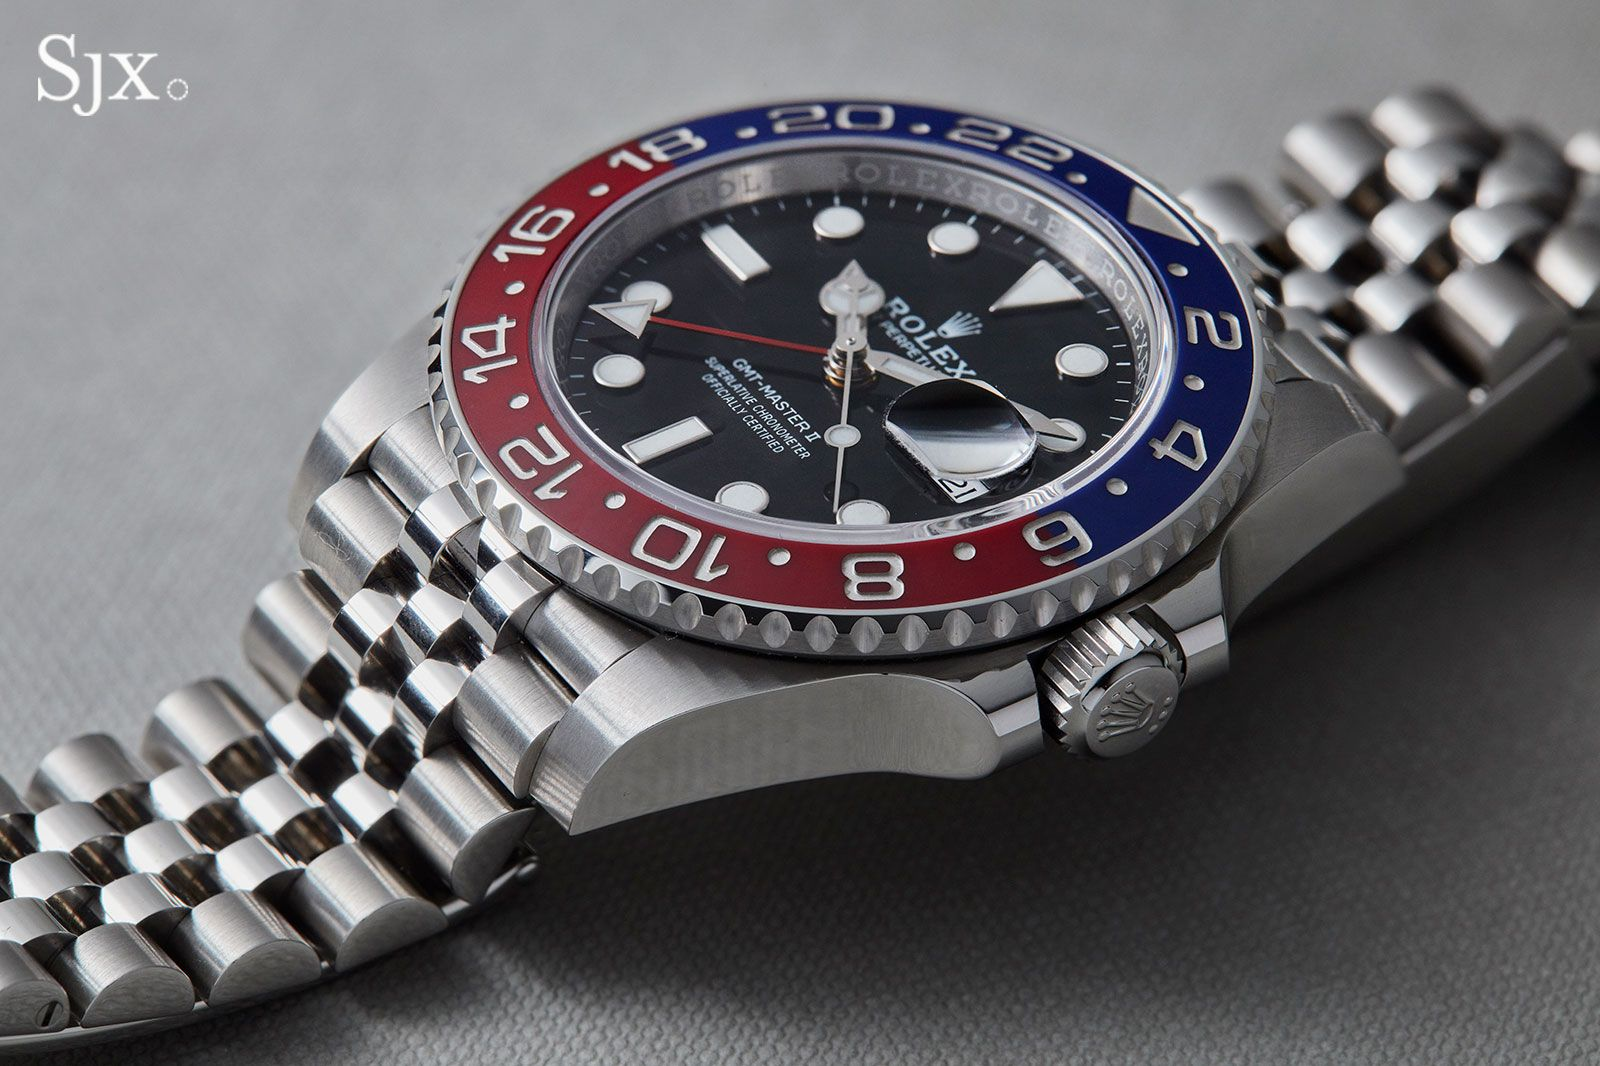 Up Close With The Rolex Gmtmaster Ii U201cpepsi U201d On Jubilee Bracelet Sjx Watches Rolex Gmt Rolex Gmt Master Luxury Watches For Men